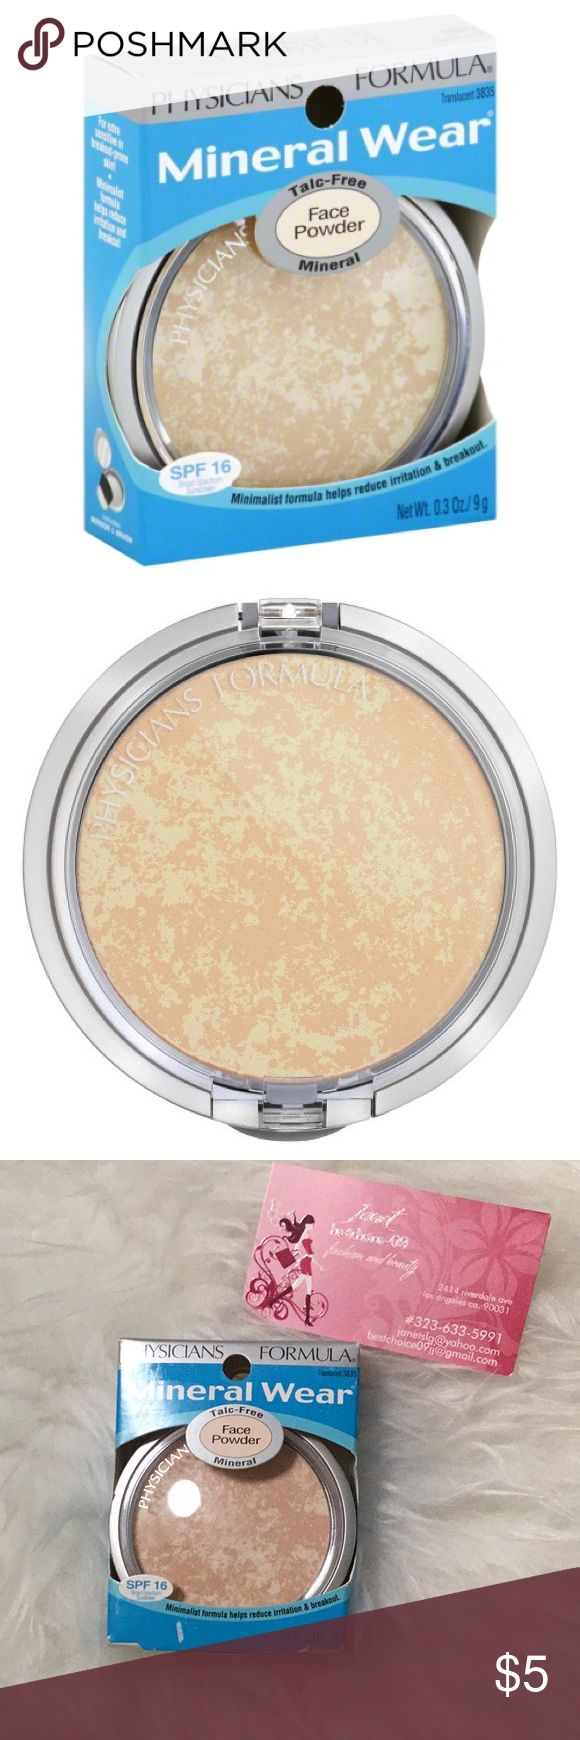 Physicians Formula Mineral Wear Face Powder🌹 Brand New